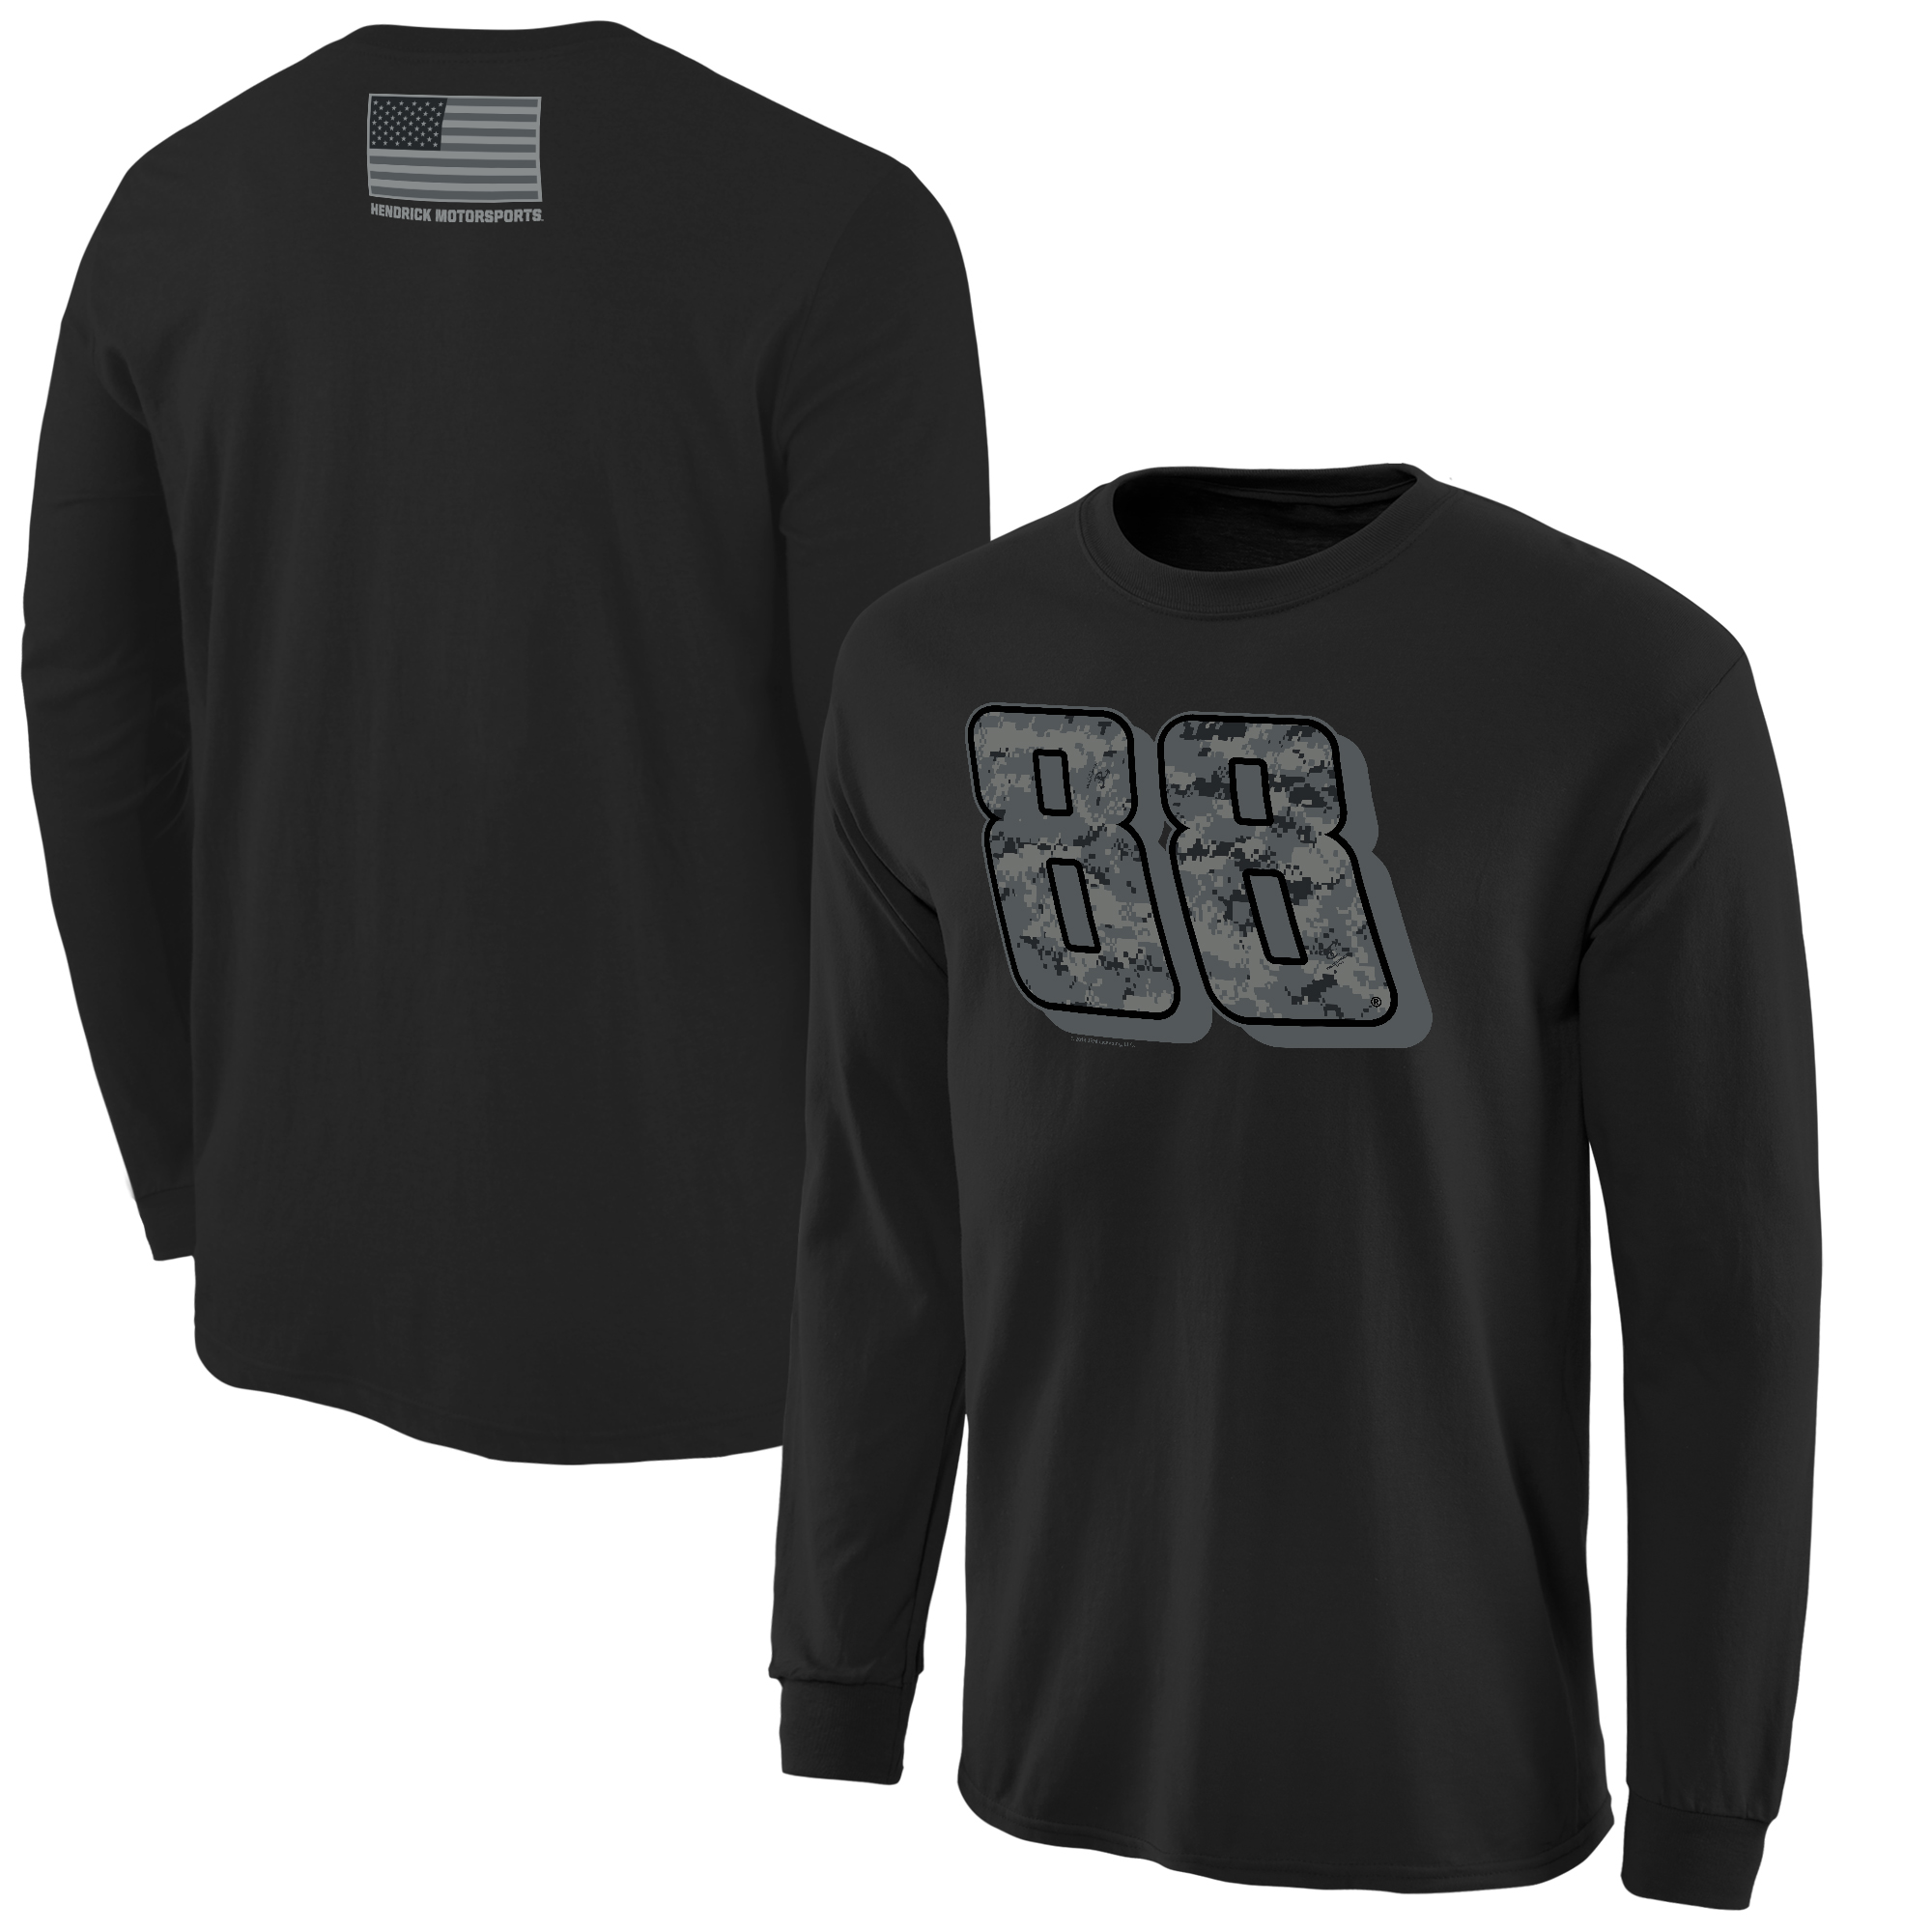 Dale Earnhardt Jr. Digi Camo Battallion Long Sleeve T-Shirt - Black